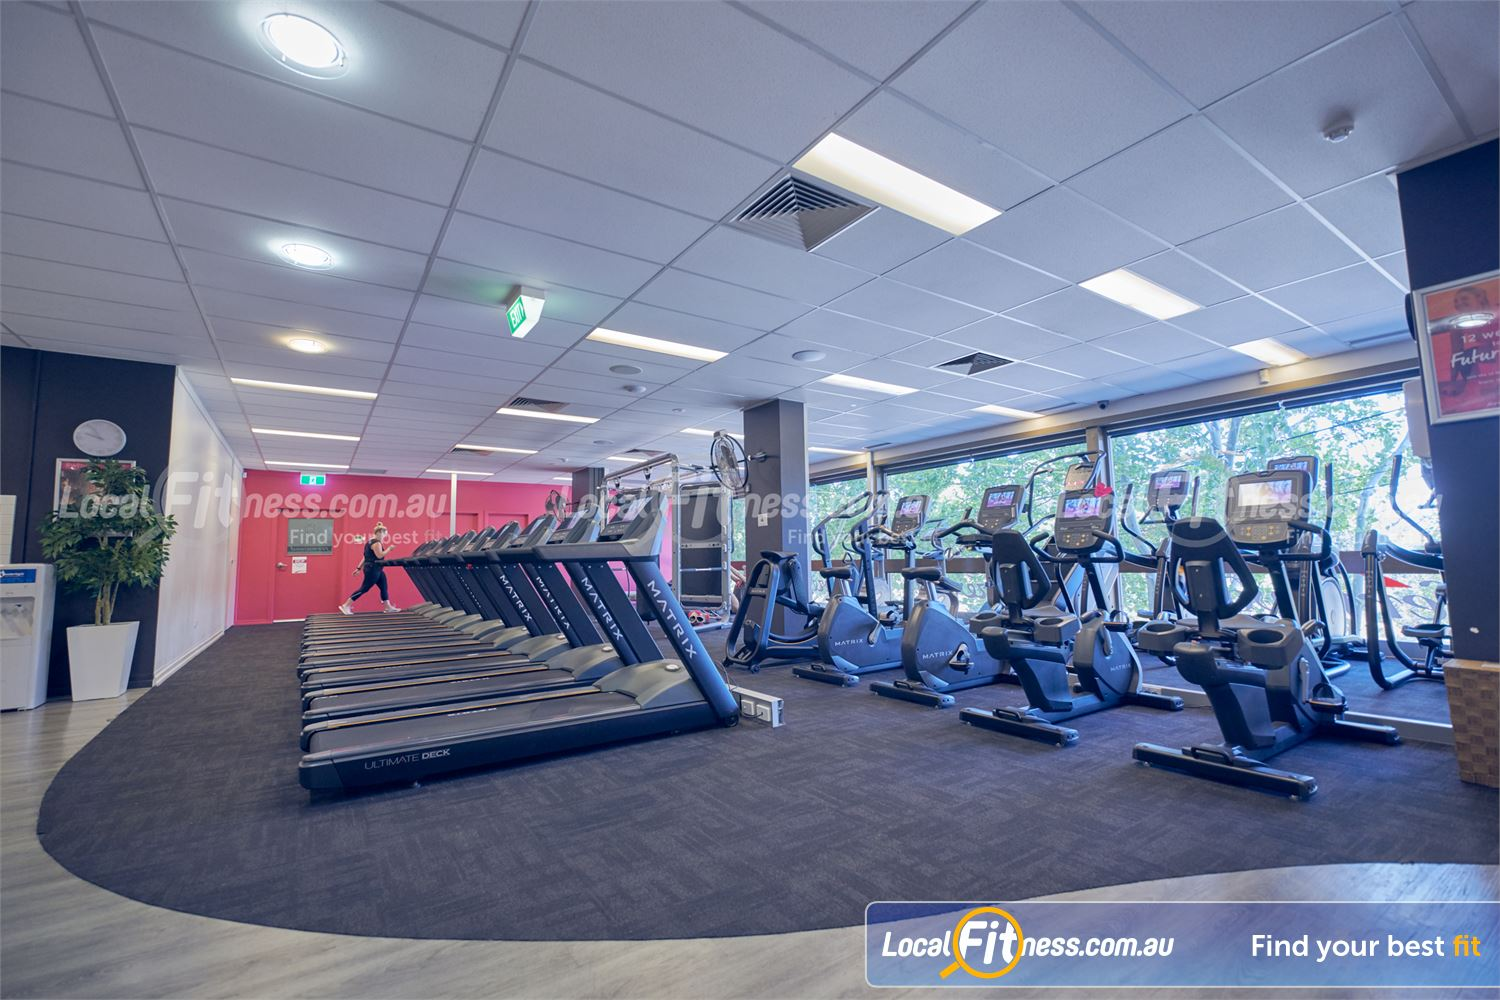 Fernwood Fitness St Kilda At Fernwood St Kilda, we provide 24-hour gym access to our cardio area.